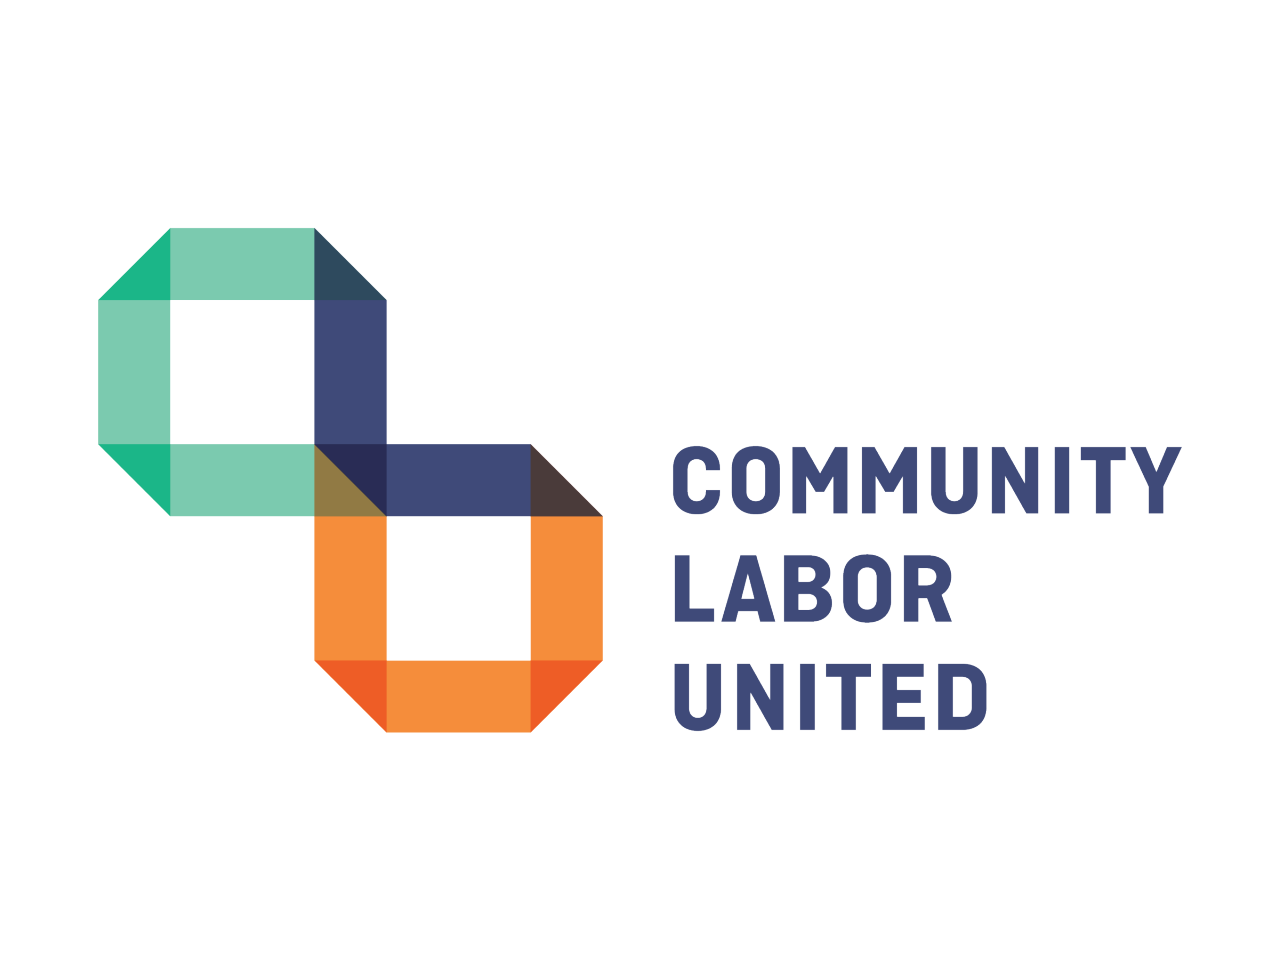 Empowering community and labor organizations that protect and promote the interests of working families.